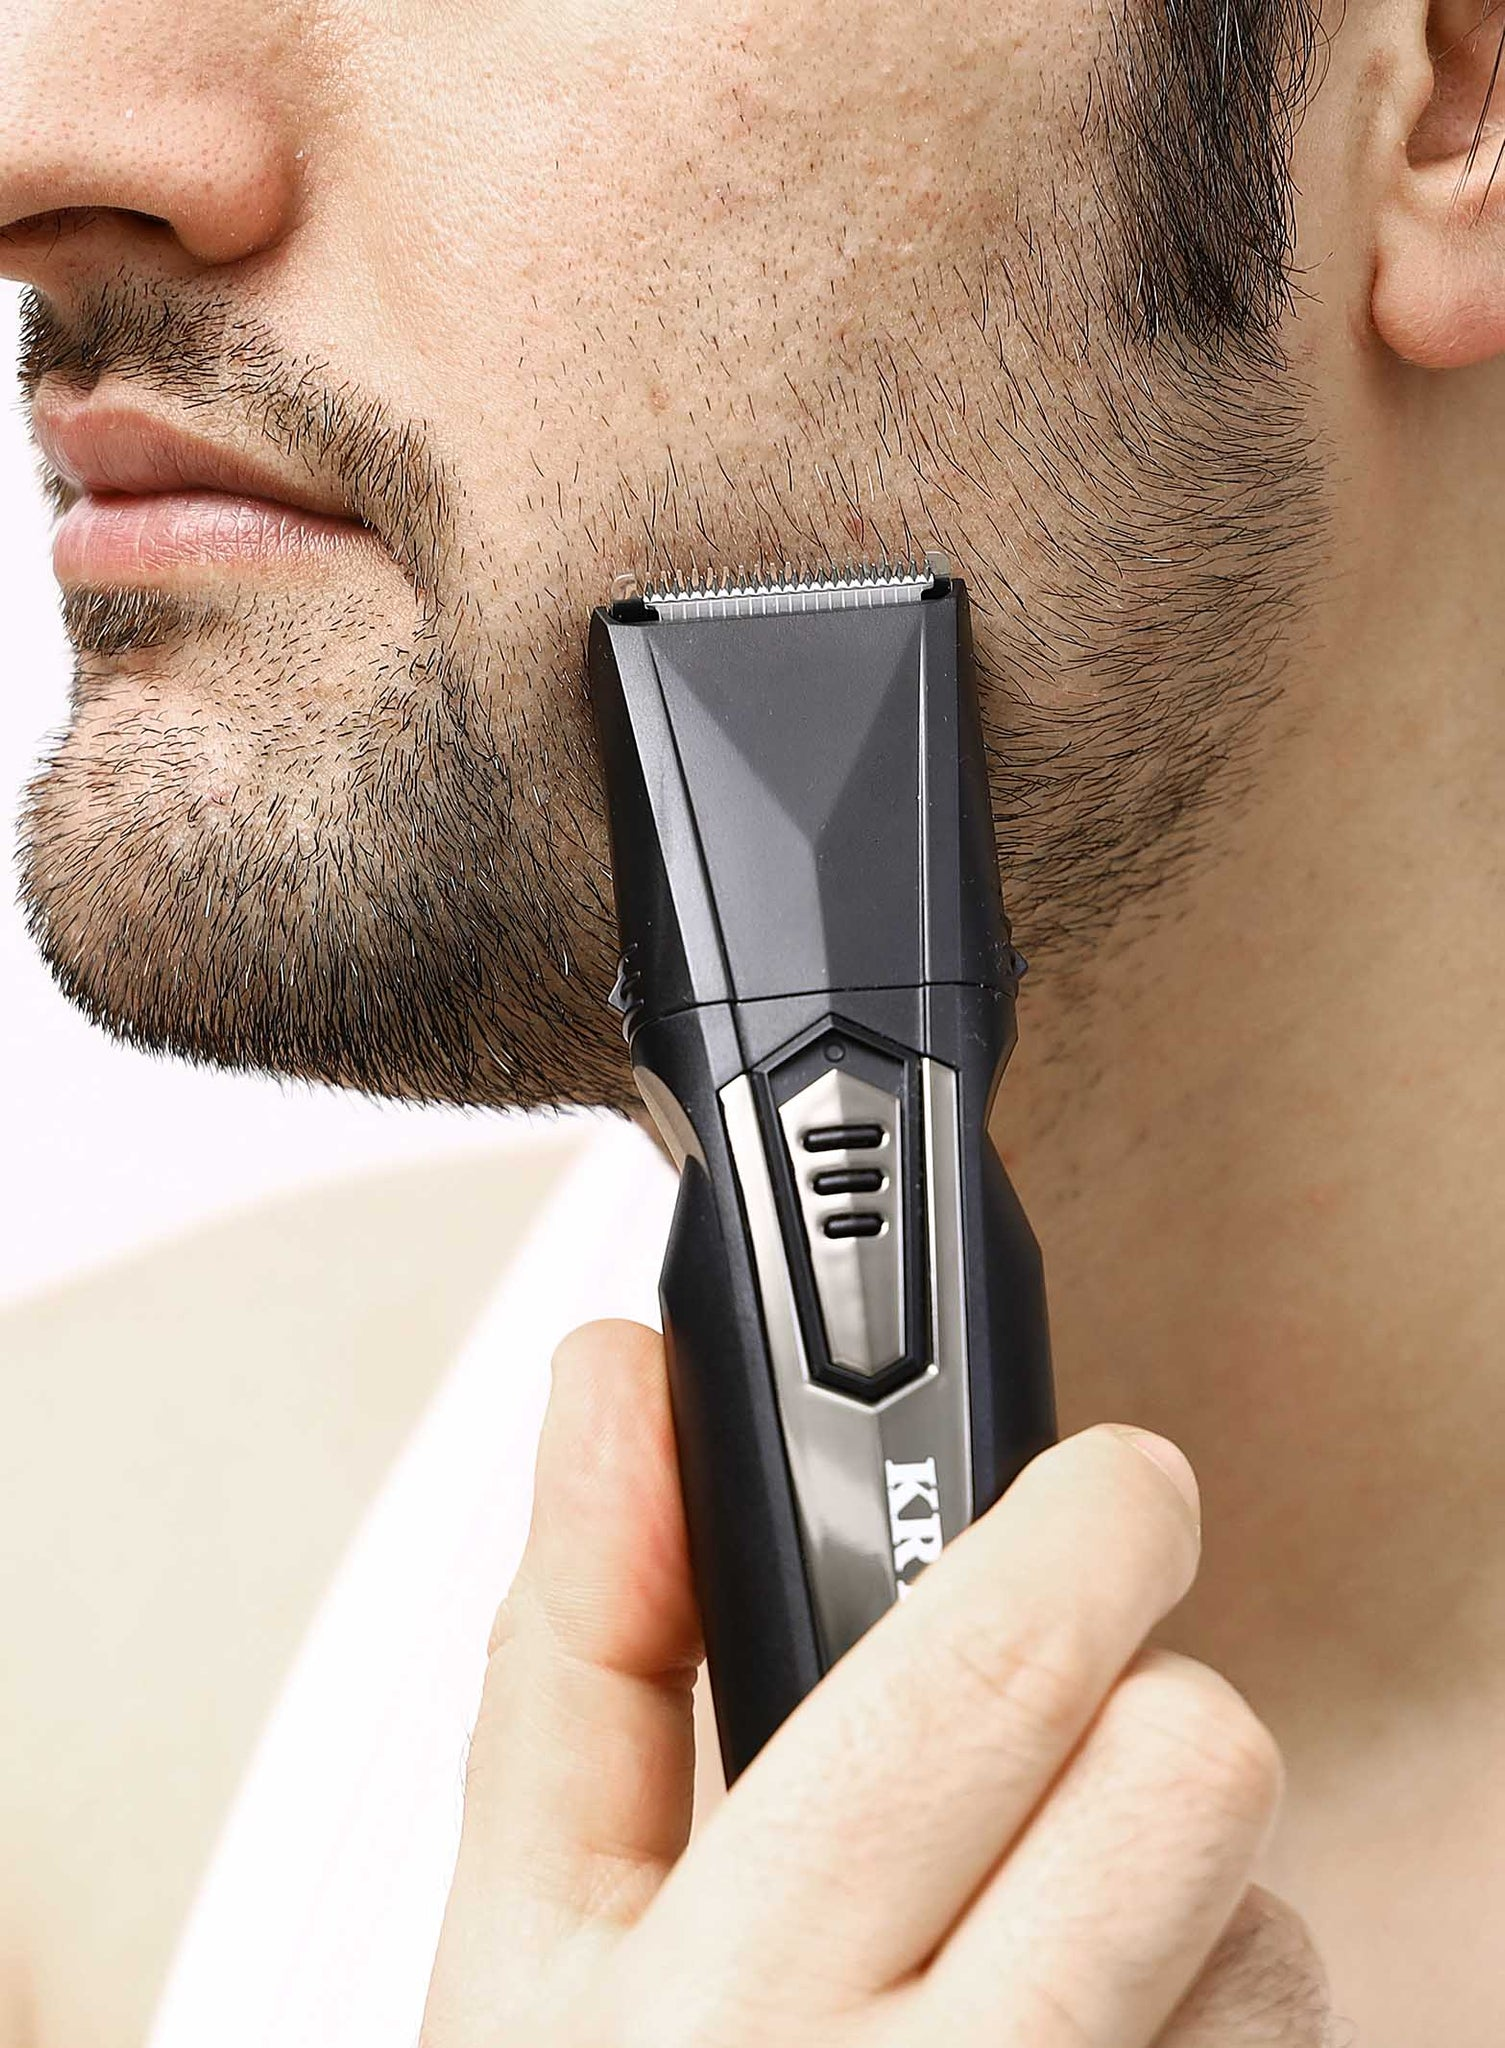 Rechargeable 10 IN 1 Grooming Kit - Shaver & SideburnTrimmer - Men's Shaver - Travel Portable Shaver Kit - 45 Minutes Working Time - Hair Clipper & Beard Trimmer Kit